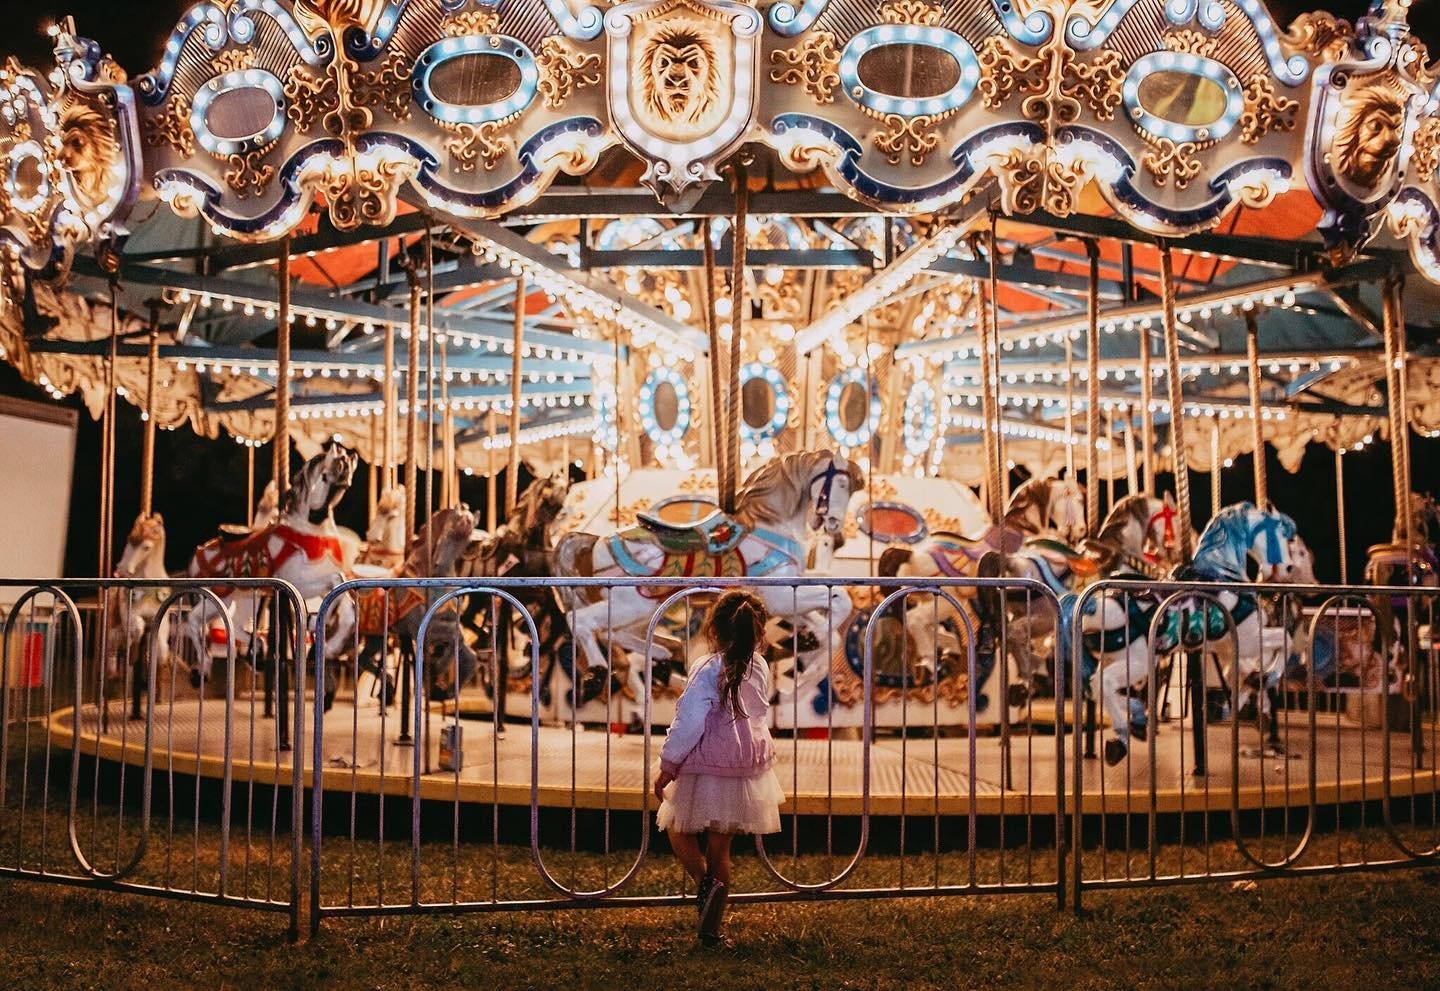 Vacaville's seasonal attractions will keep the whole family entertained